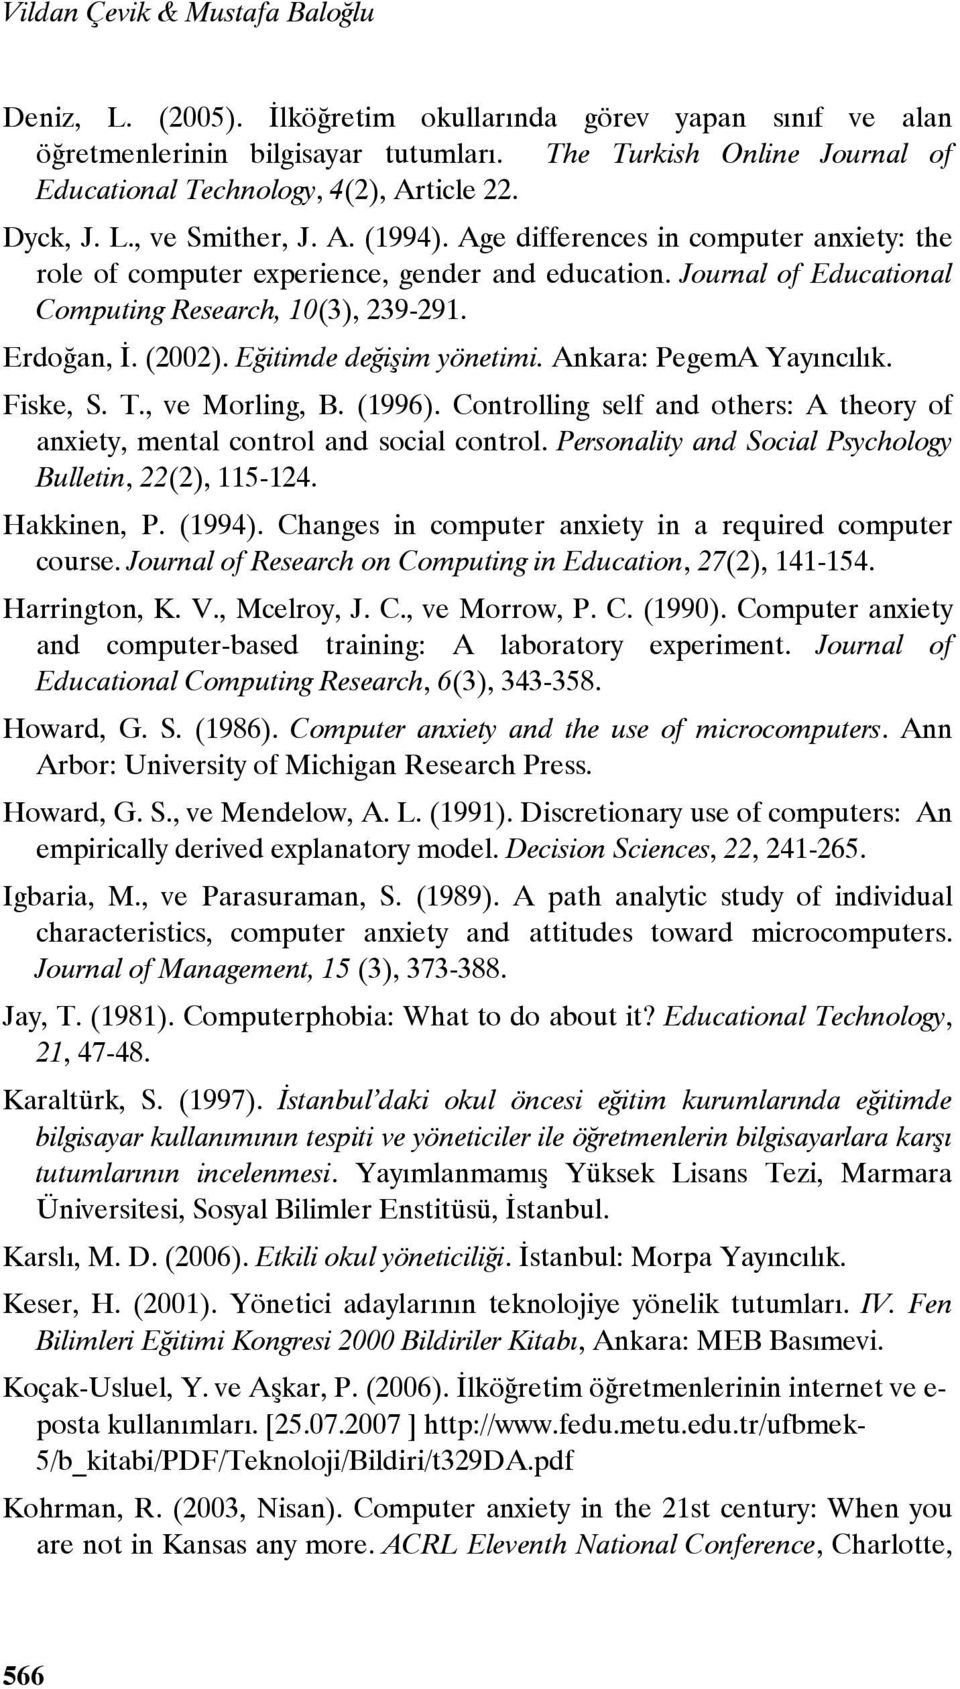 Age differences in computer anxiety: the role of computer experience, gender and education. Journal of Educational Computing Research, 10(3), 239-291. Erdoğan, İ. (2002). Eğitimde değişim yönetimi.